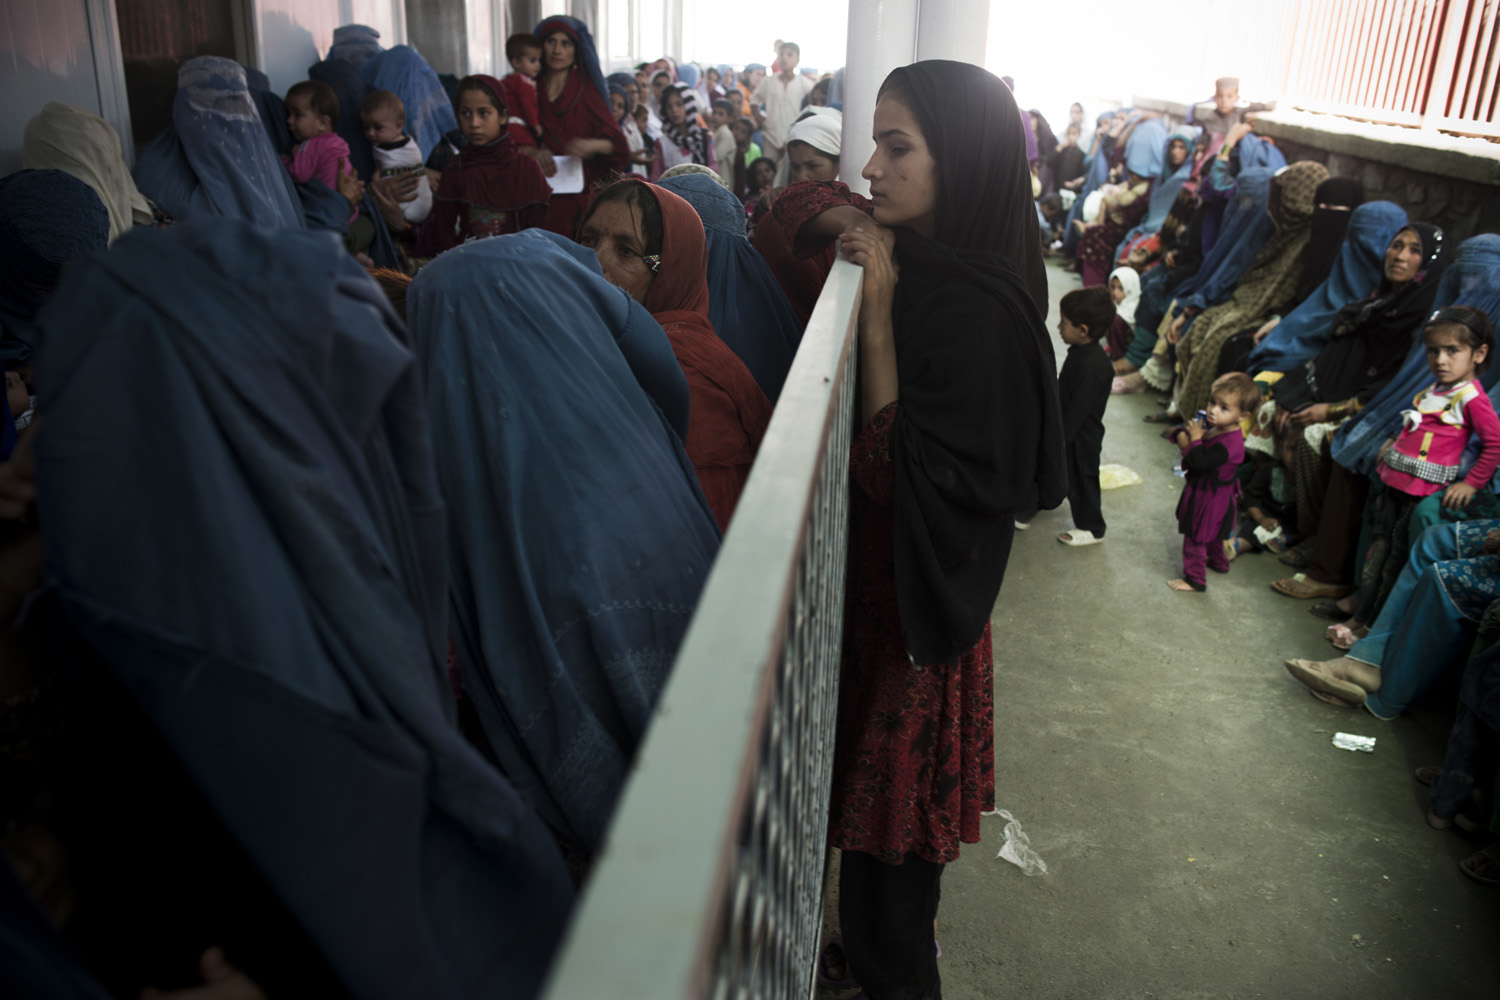 Aug. 19, 2013. Women wait for services at the Ahmed Shah Baba Hospital in Kabul.